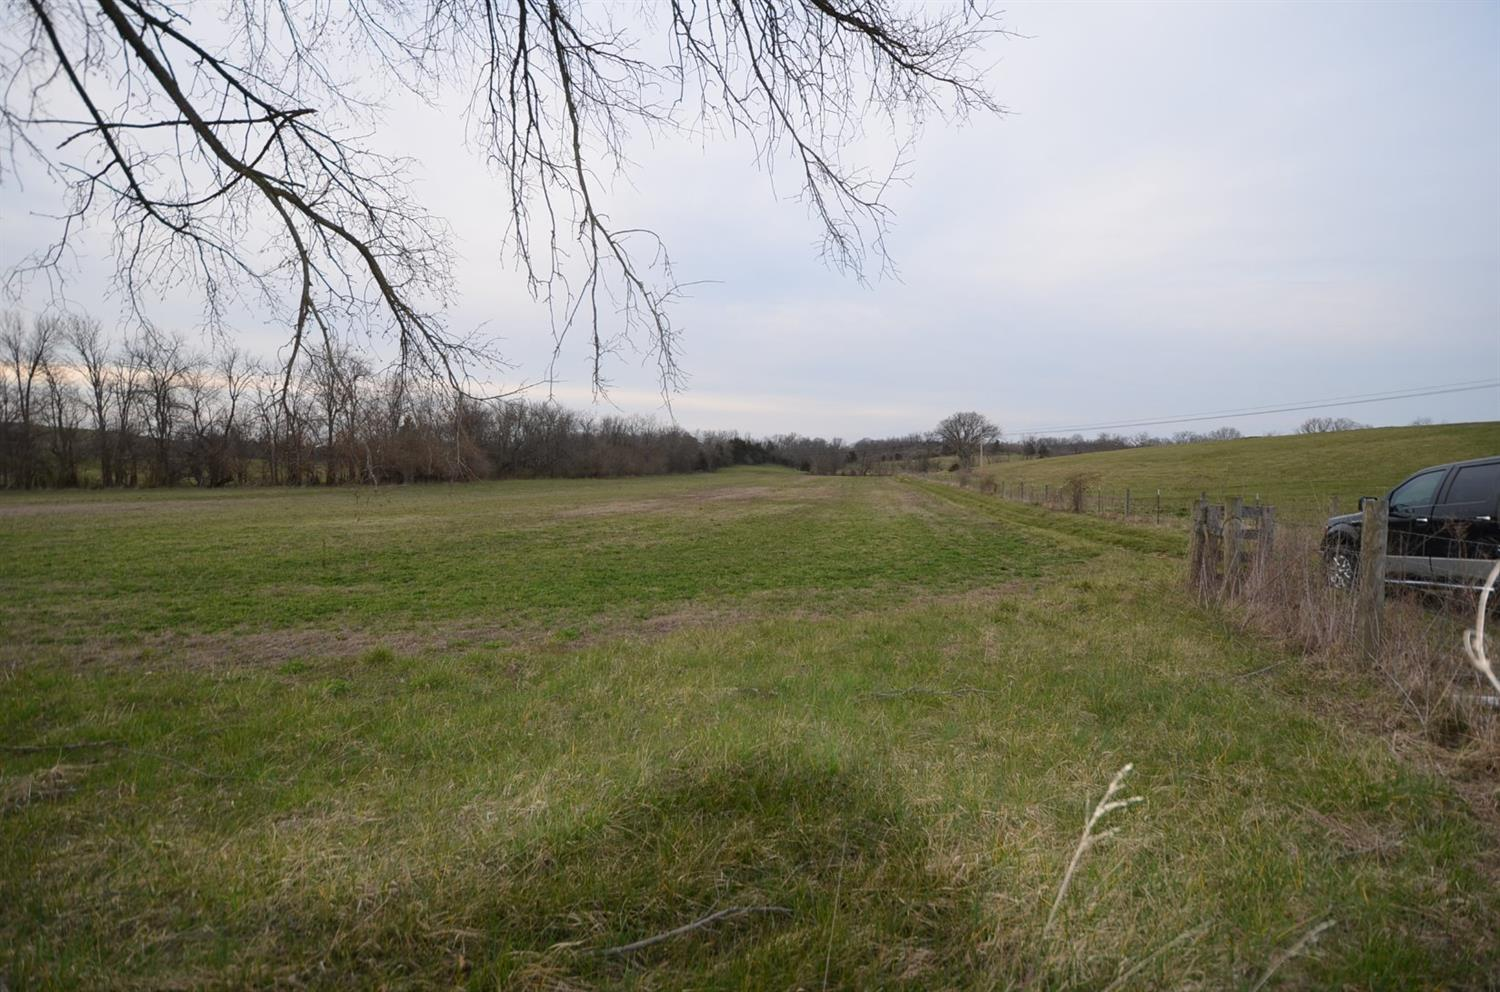 63.91%20acres%20of%20land%20located%20about%206.5%20miles%20west%20of%20Harrodsburg.%20%20The%20farm%20has%20approximately%2016%20acres%20of%20creek%20bottom%20land%20with%20the%20balance%20in%20pasture%20grass.%20%20There%20is%20a%20good%20creek%20running%20through%20the%20farm%20plus%202%20ponds%20on%20the%20property.%20%20This%20is%20a%20good%20farm%20for%20cropping%20and%20livestock%20grazing.